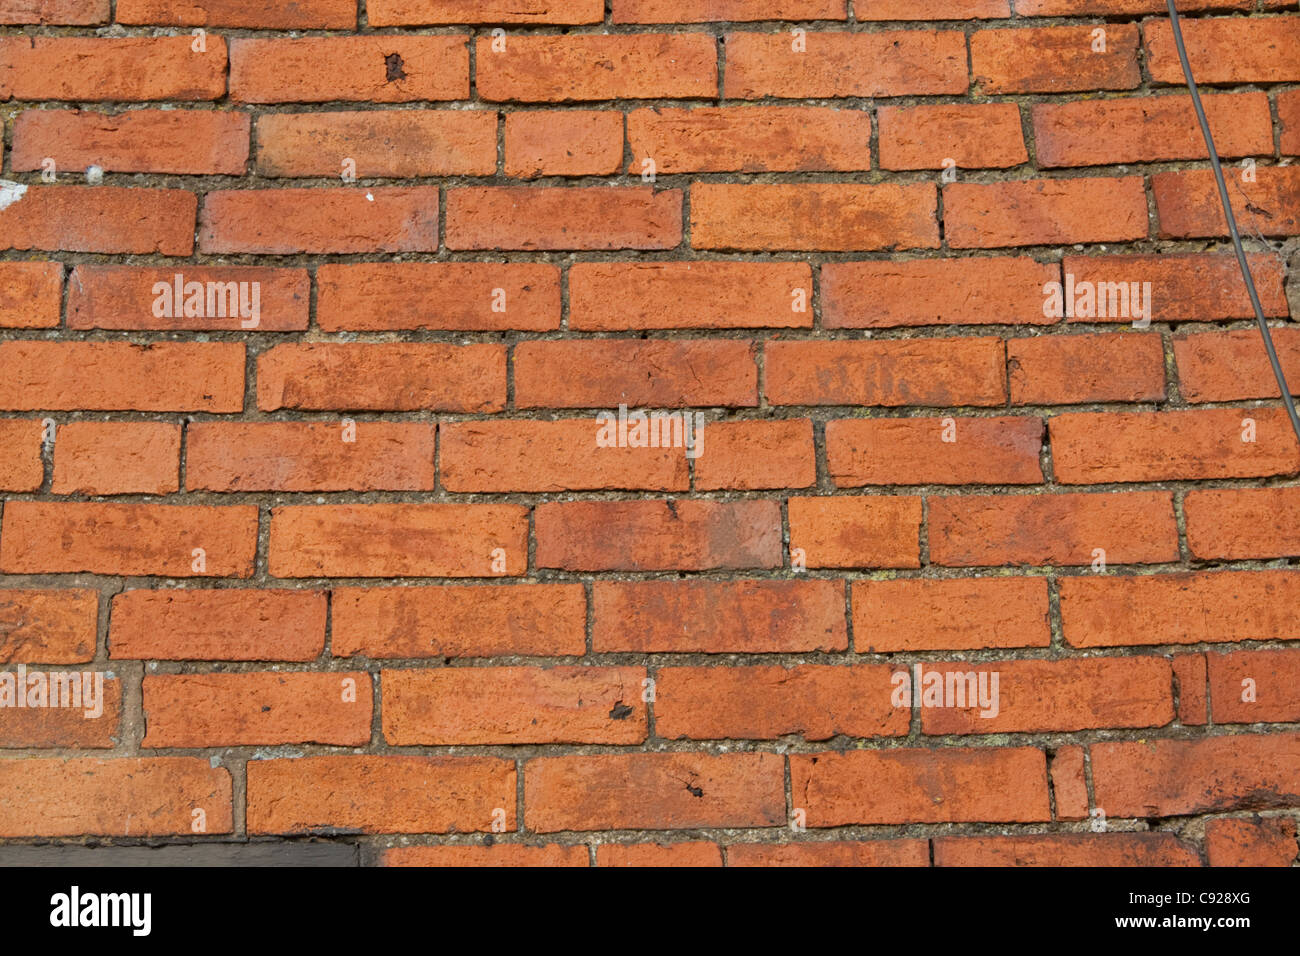 hand made red bricks in wall old farmhouse Colemans Hill Farm Mickleton UK - Stock Image